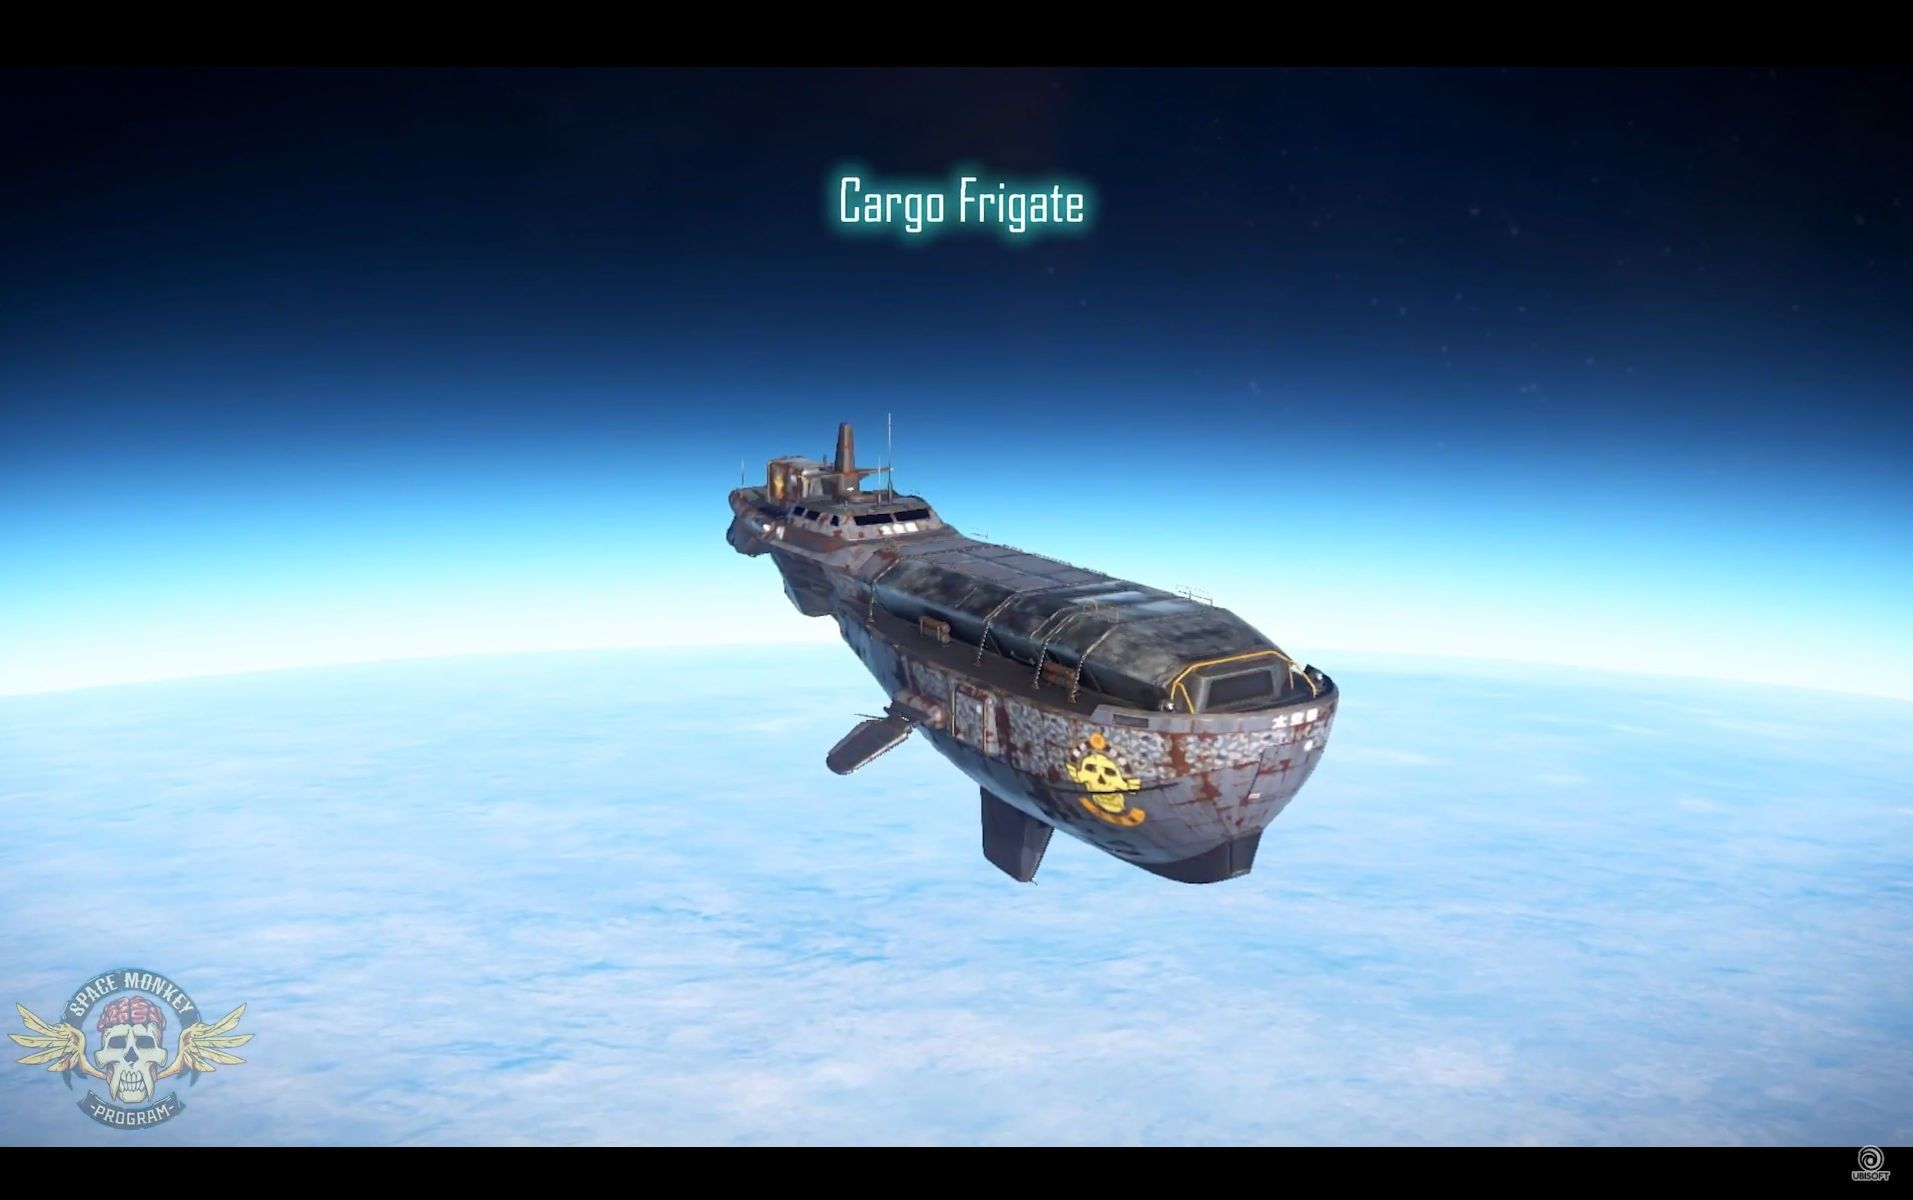 Pin By Crazy Lifestyle Interest On Beyond Good And Evil 2 Beyond Good And Evil Spaceship Art Art Beyond good and evil 2 spaceship